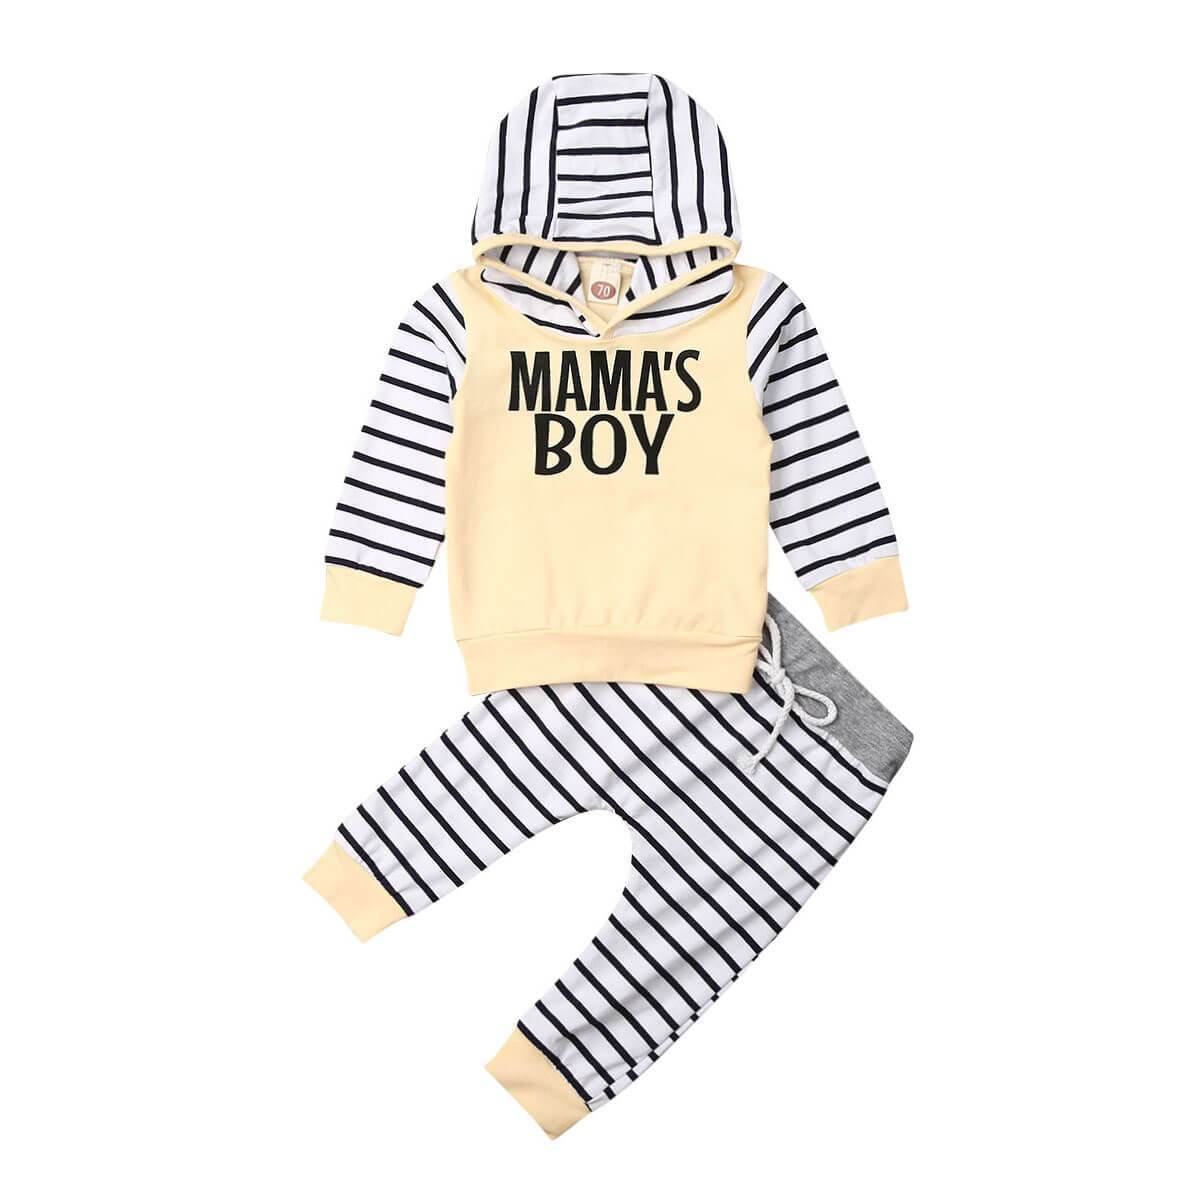 Mama's Boy Printed Striped Hoodie Set - 3-6 months